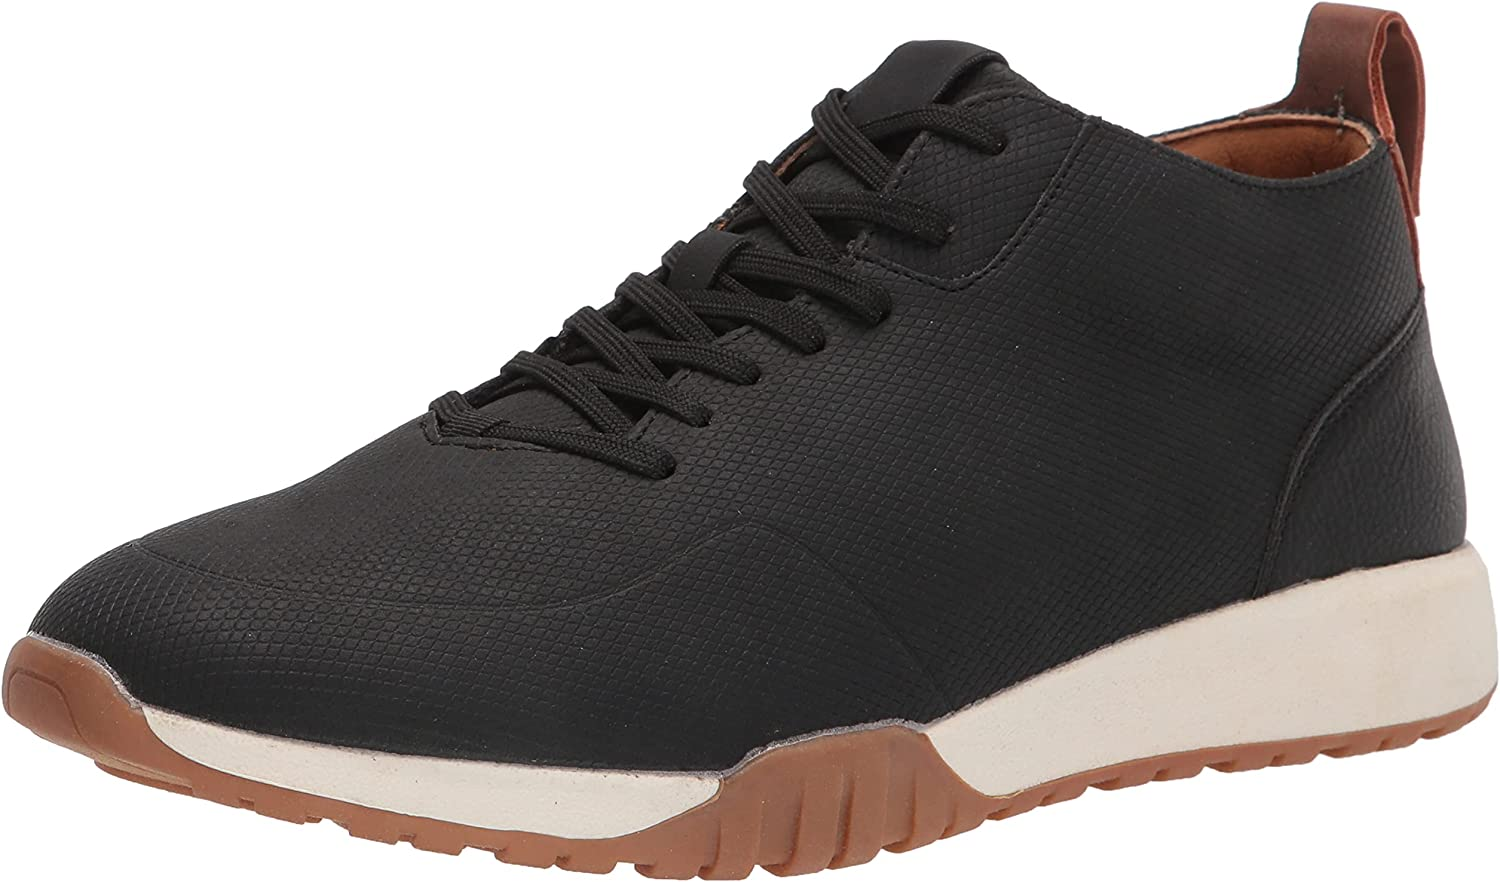 Madden Men's Hastan Sneaker Max 55% OFF Sales of SALE items from new works